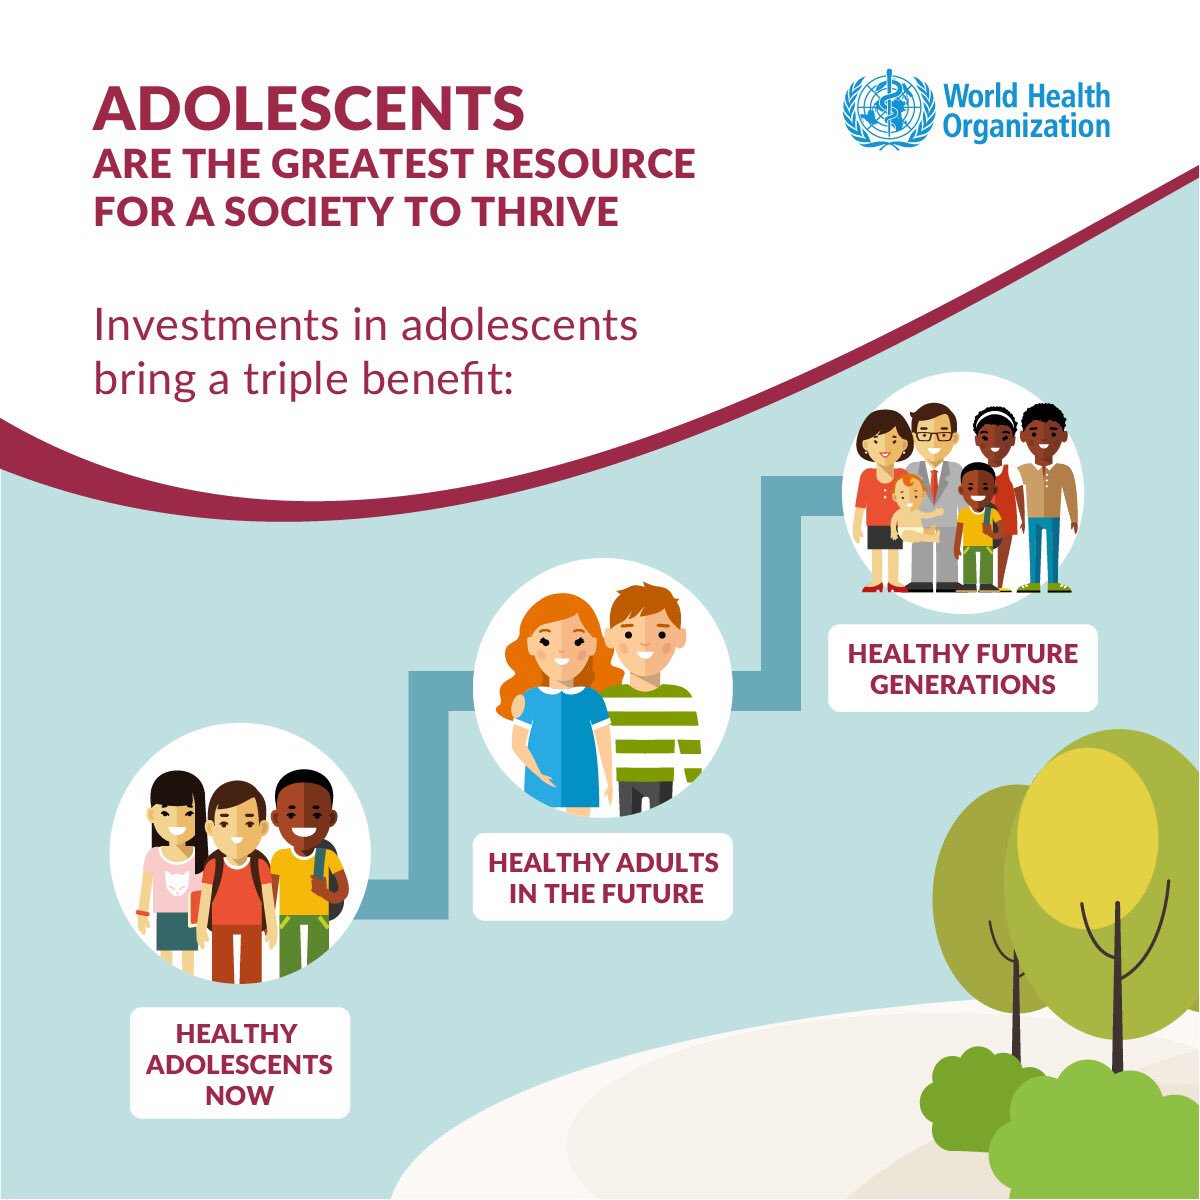 Today is #YouthDay! Investment in #adolescents&#39; health will drive a healthy, prosperous and sustainable society  http:// bit.ly/2vvy2Bt  &nbsp;  <br>http://pic.twitter.com/ZqZ9a8lc9f